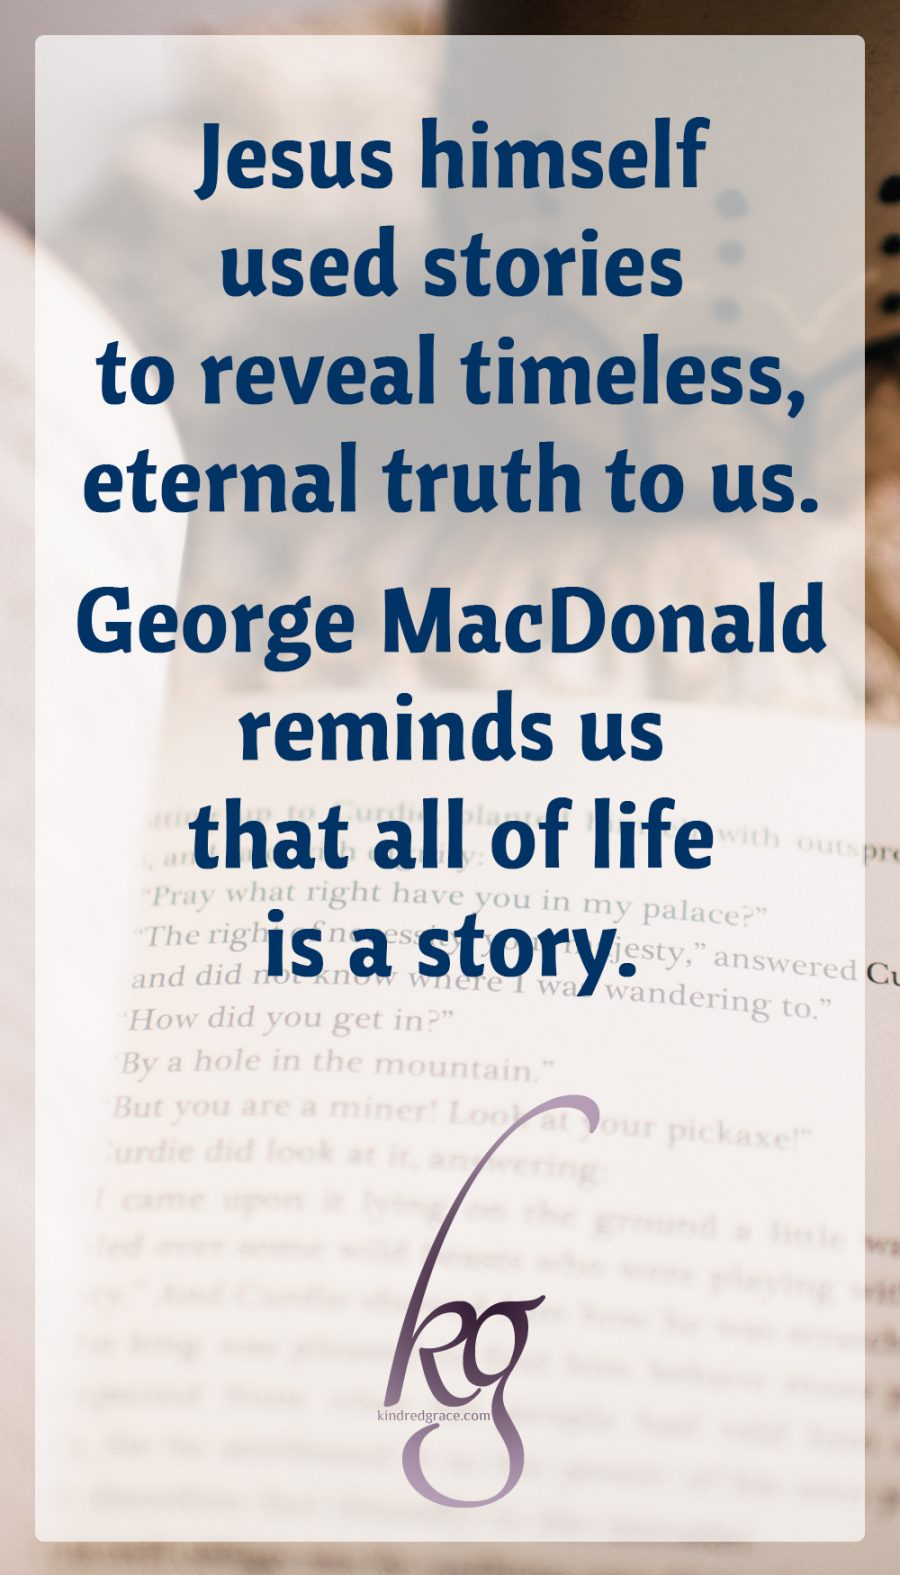 Jesus himself used stories to reveal timeless, eternal truth to us. Following after Jesus by taking on that medium of story, George MacDonald distinguished himself in modern times with his ability to create characters that seem to have once lived, and scenery that gleams before the mind's eye through his descriptions. MacDonald reminds us that all of life is a story. A story that when lived true enters into the unseen realms where the Father and the Son live in perfect unity, and live out that life in us.